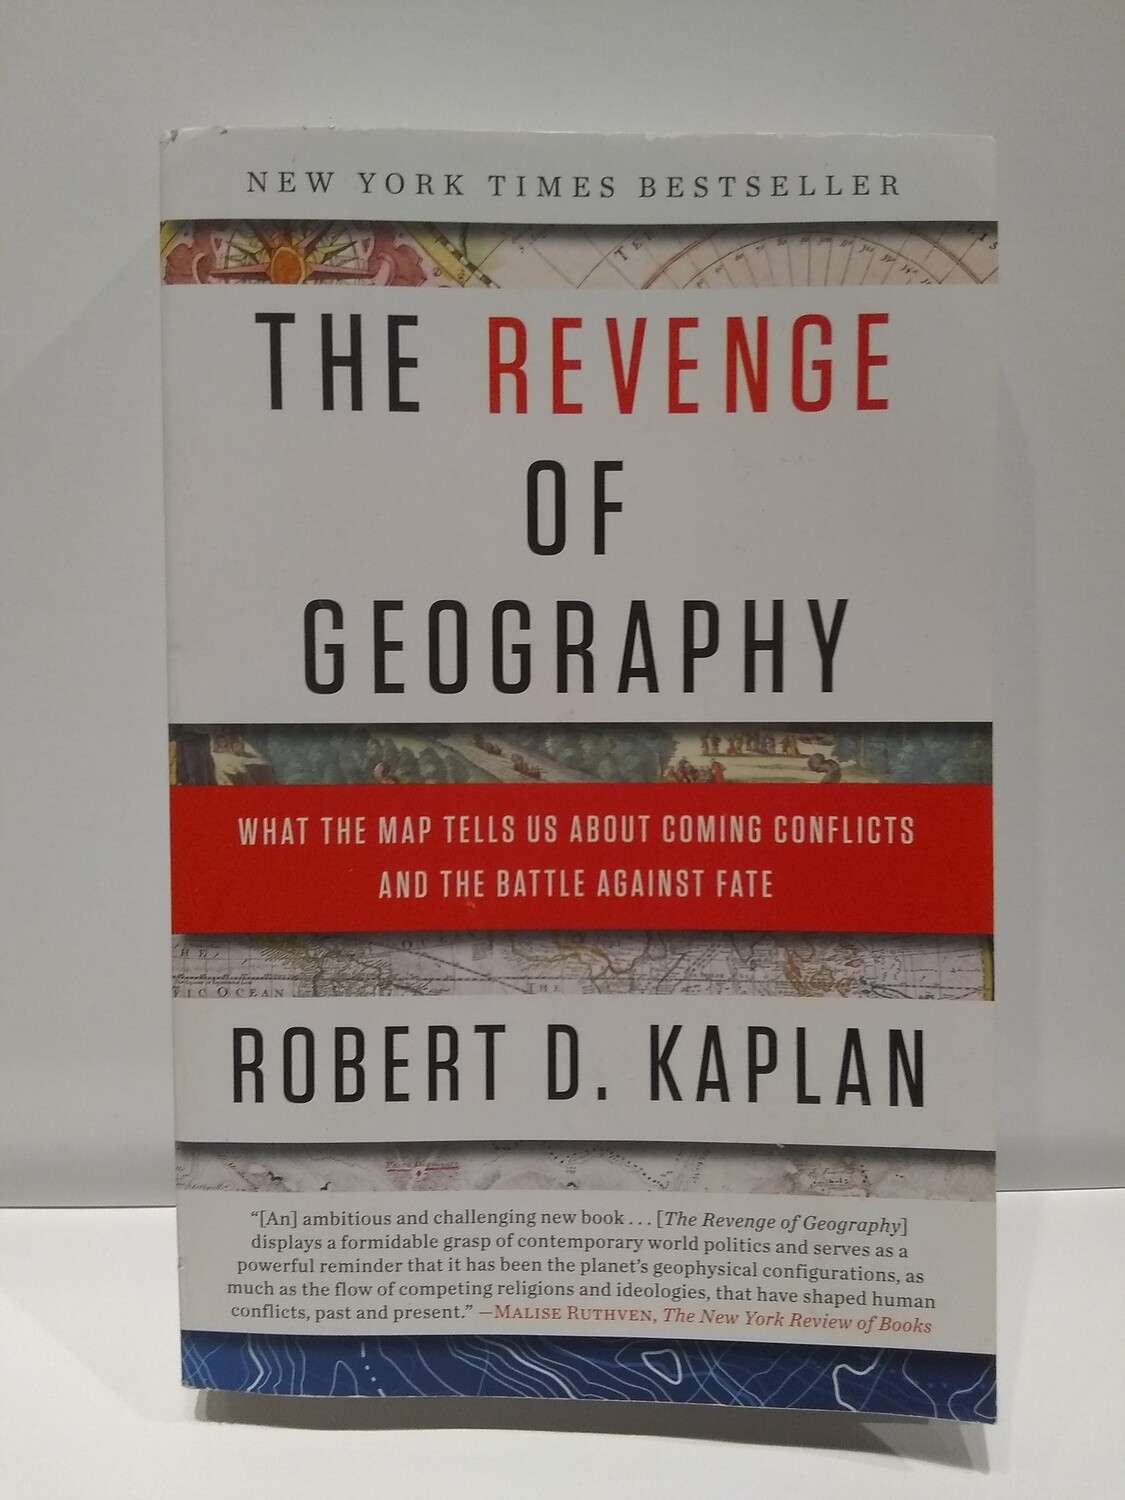 The Revenge of Geography, Robert D. Kaplan